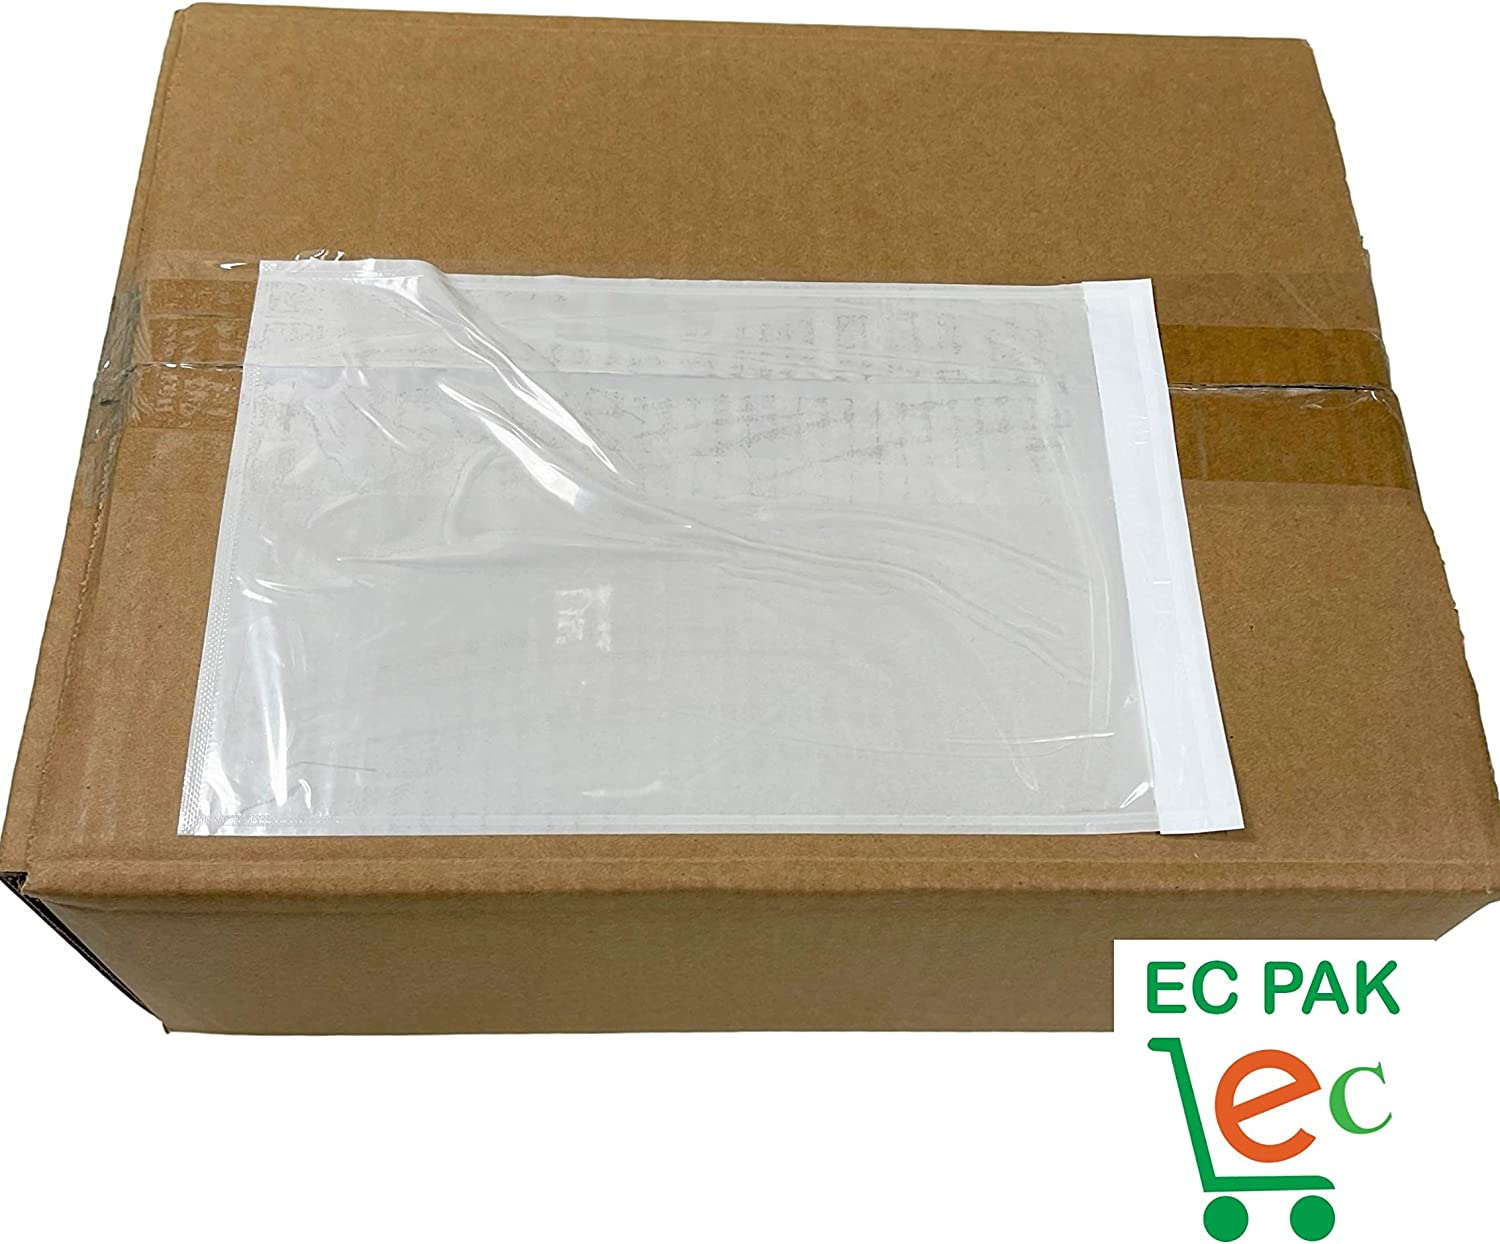 EC PAK Clear Shipping Label Envelopes Packing List Slip Pouches 6 X 9  Plain Face SIDE Loading and Self Adhesive Plastic Sleeve Mailing Bags 200 PACK